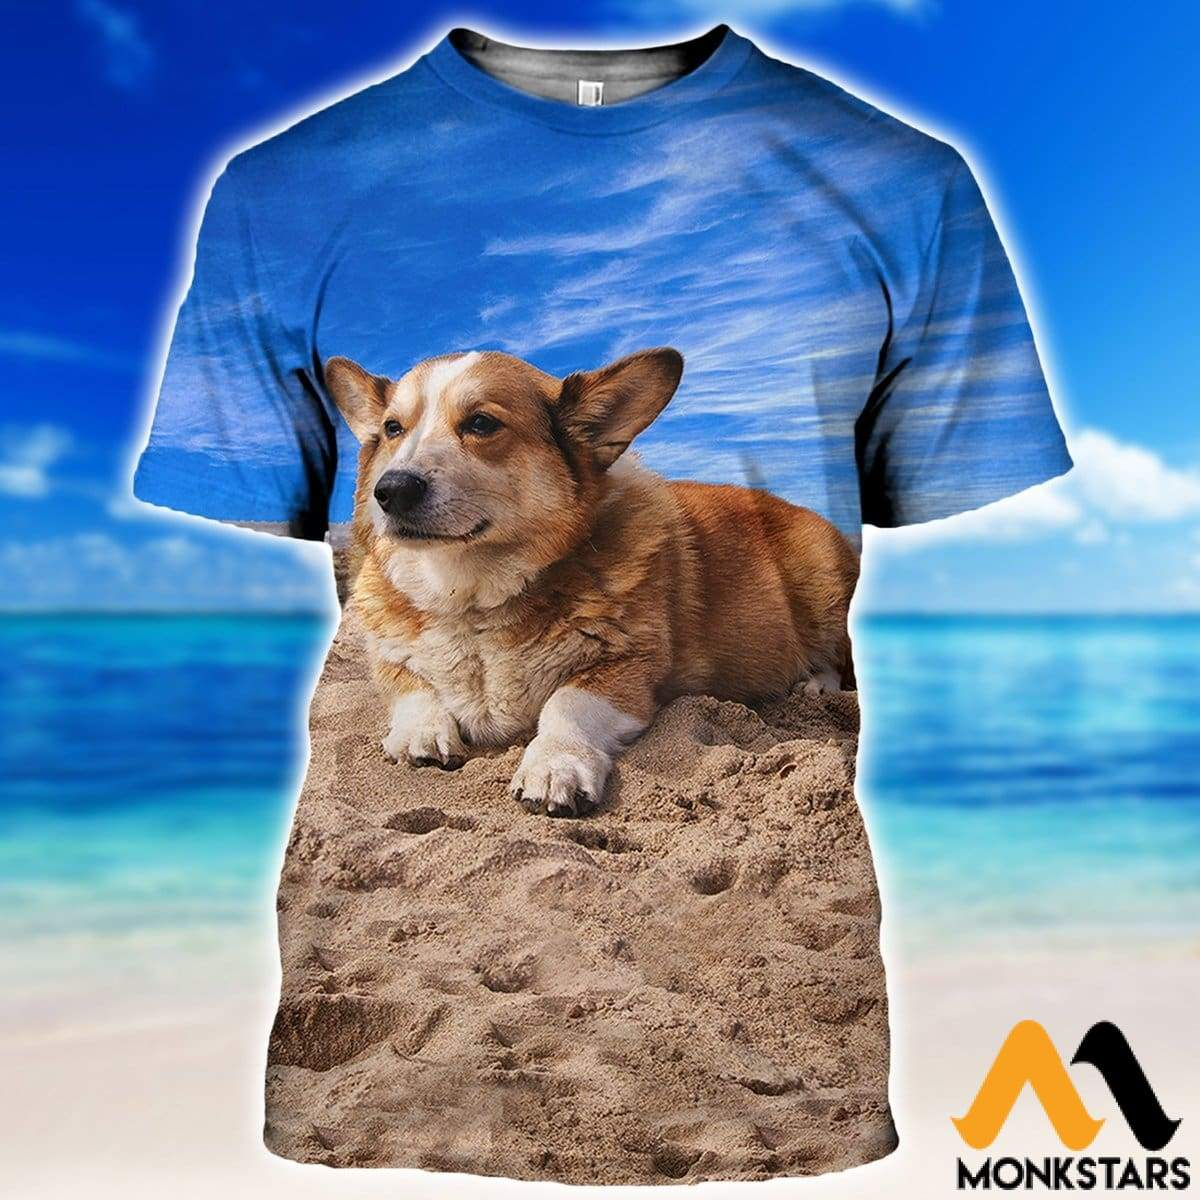 a770b96d39e1 3D All Over Printed Corgi T-shirt Hoodie SNTK230405 - Monkstars Inc.